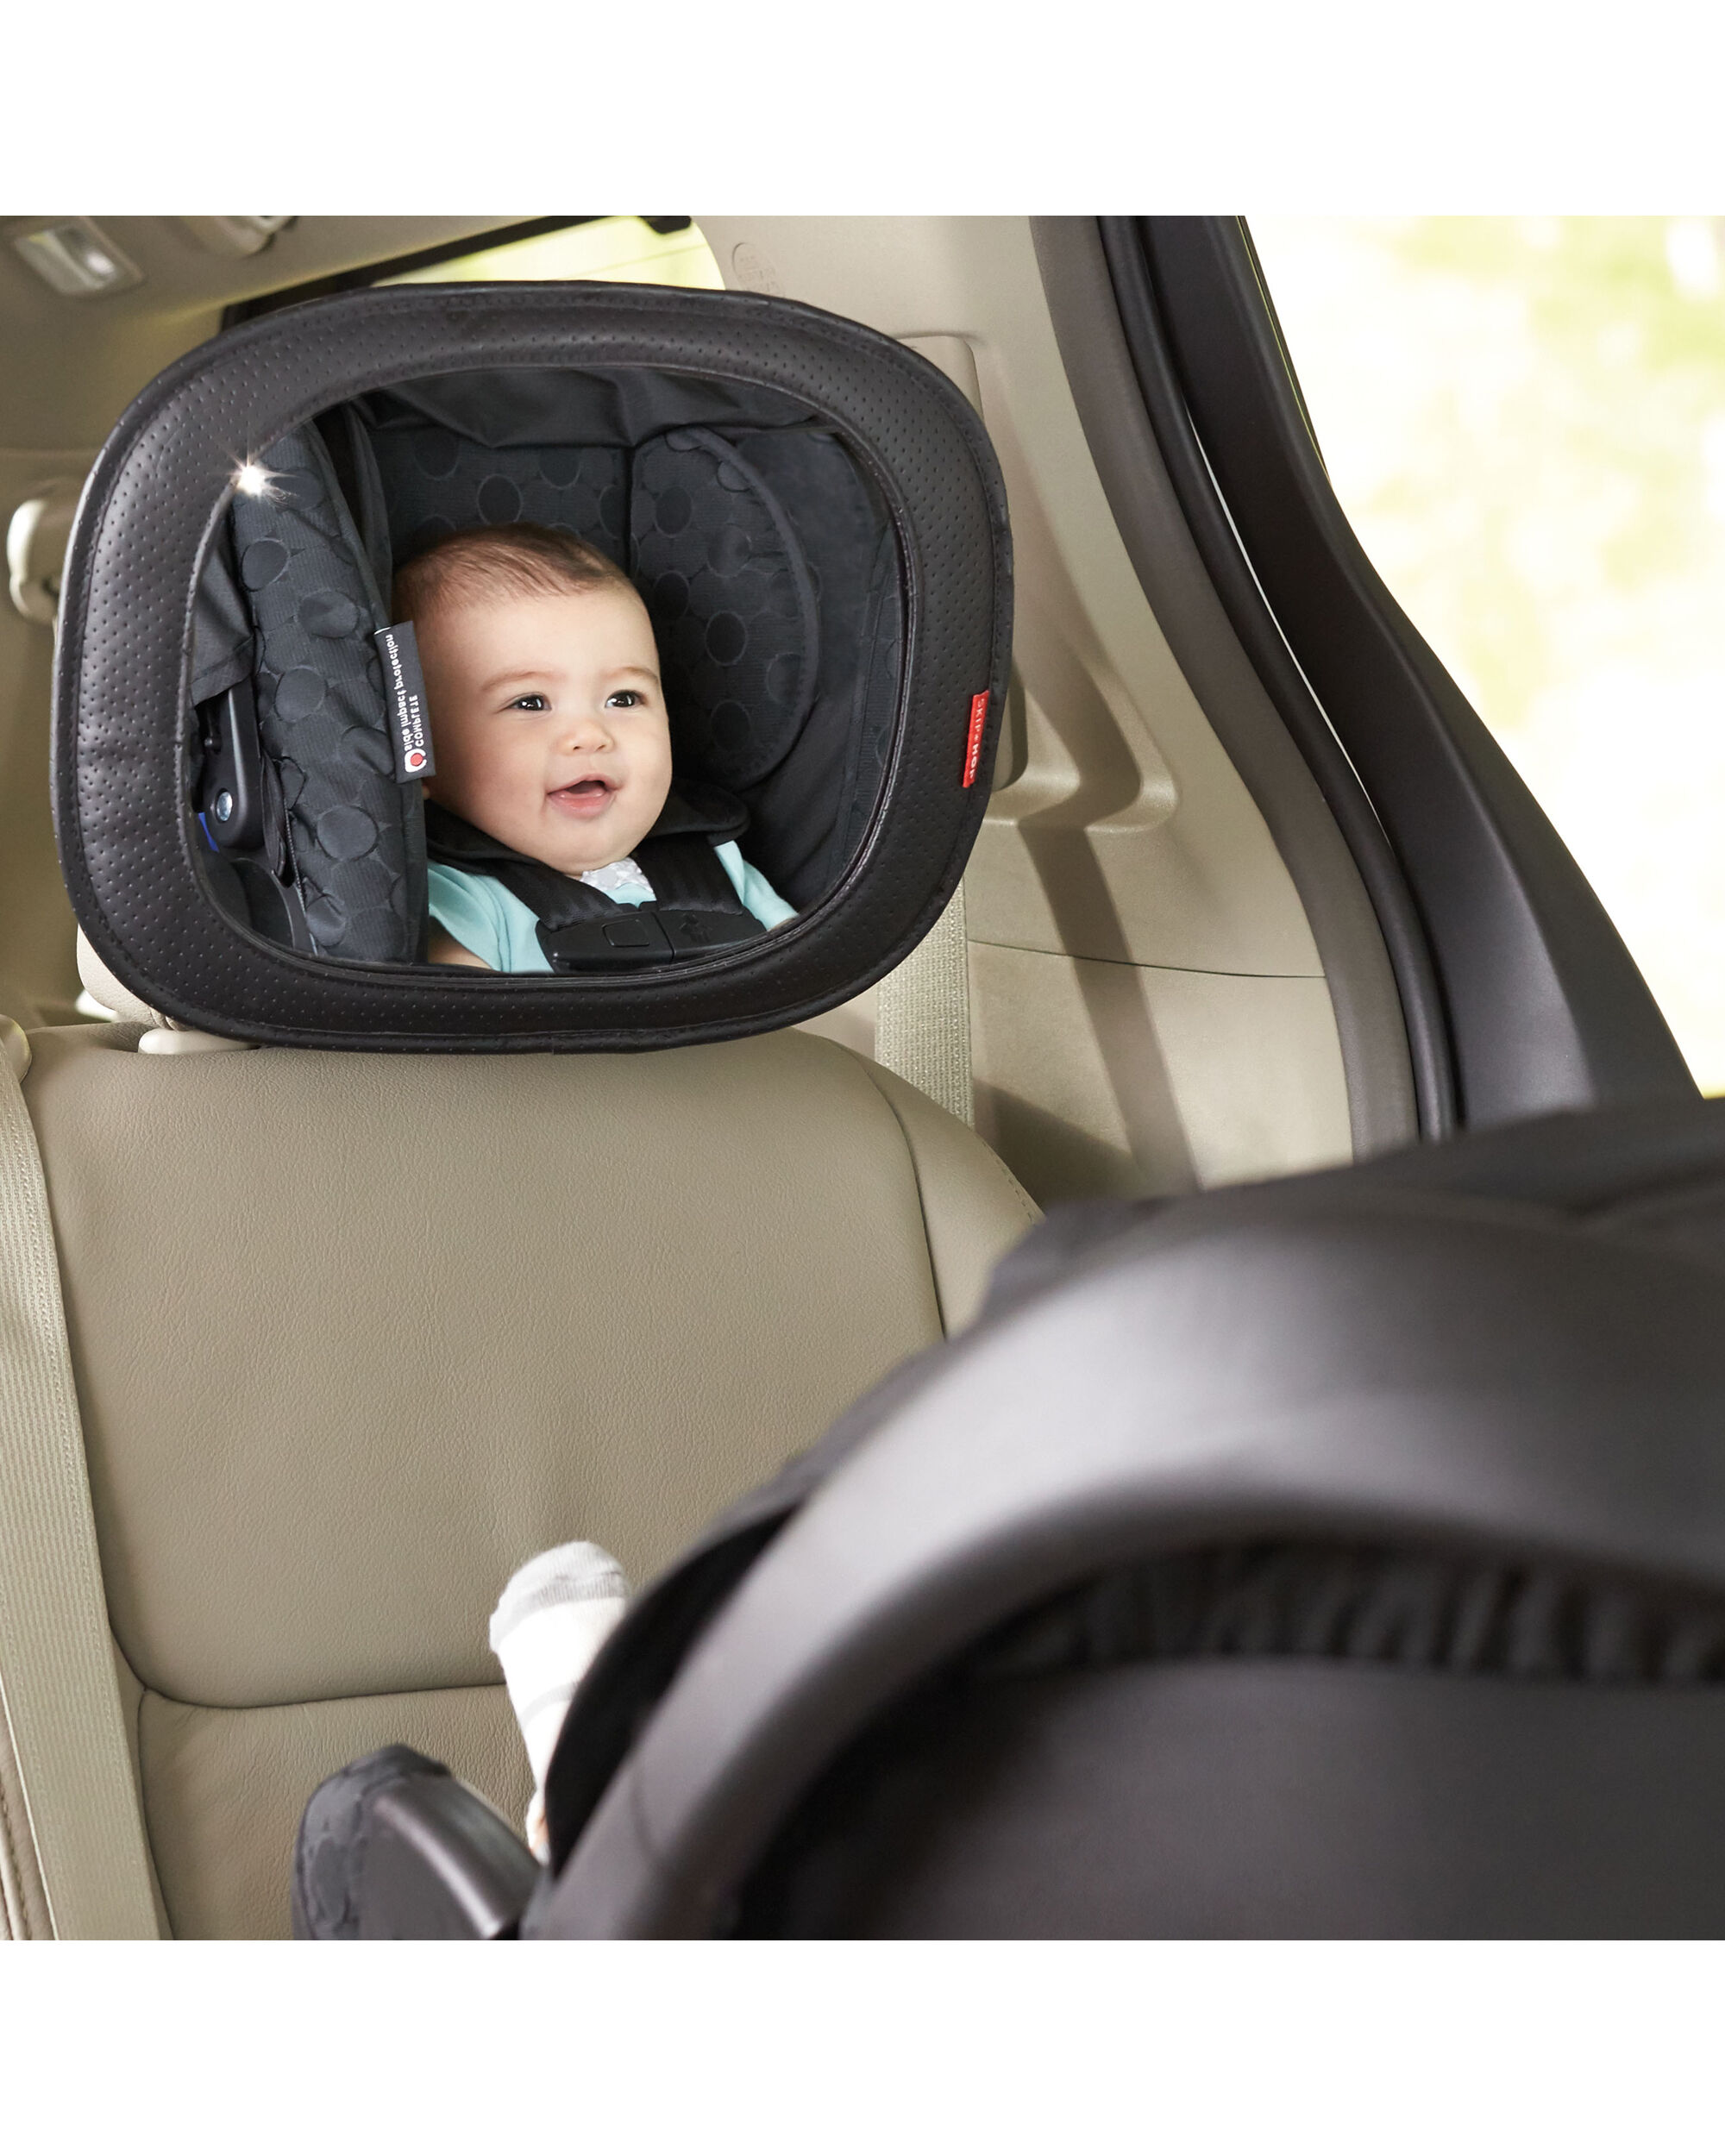 Style Driven Backseat Baby Mirror